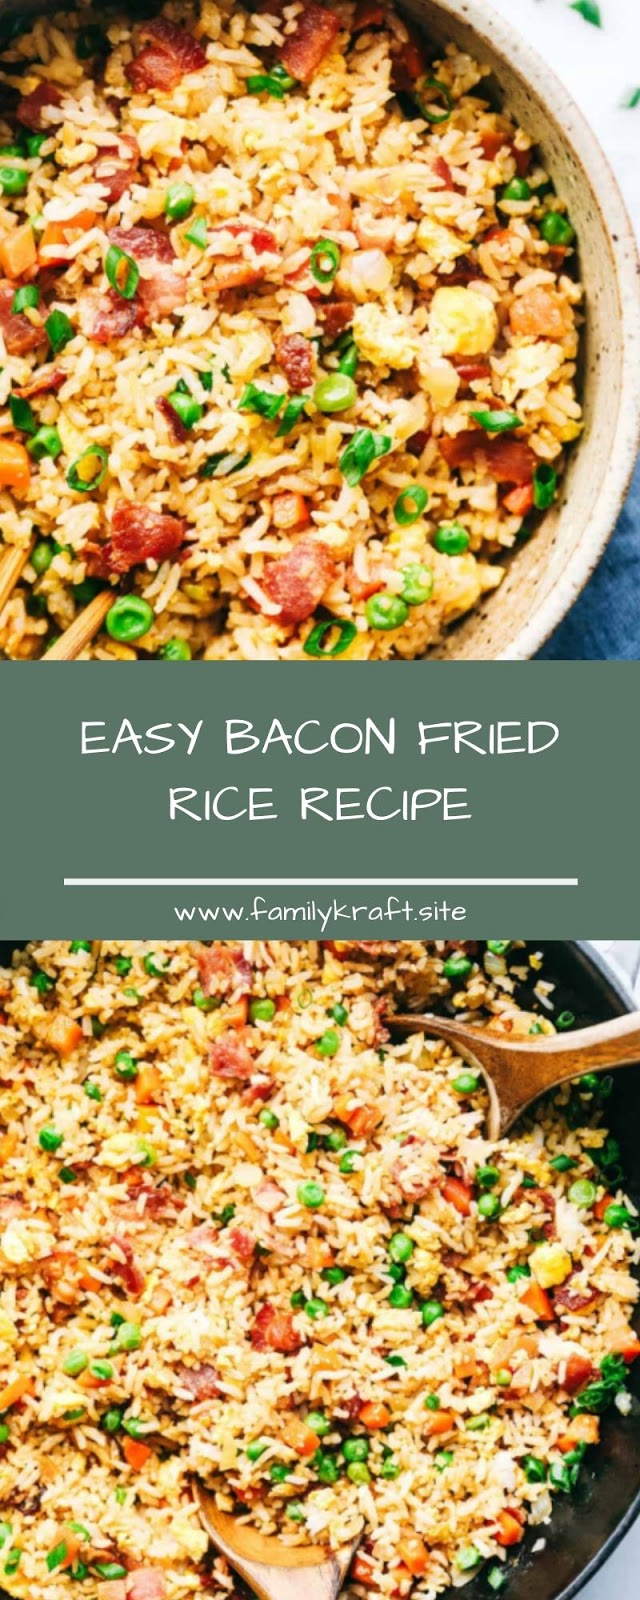 EASY BACON FRIED RICE RECIPE